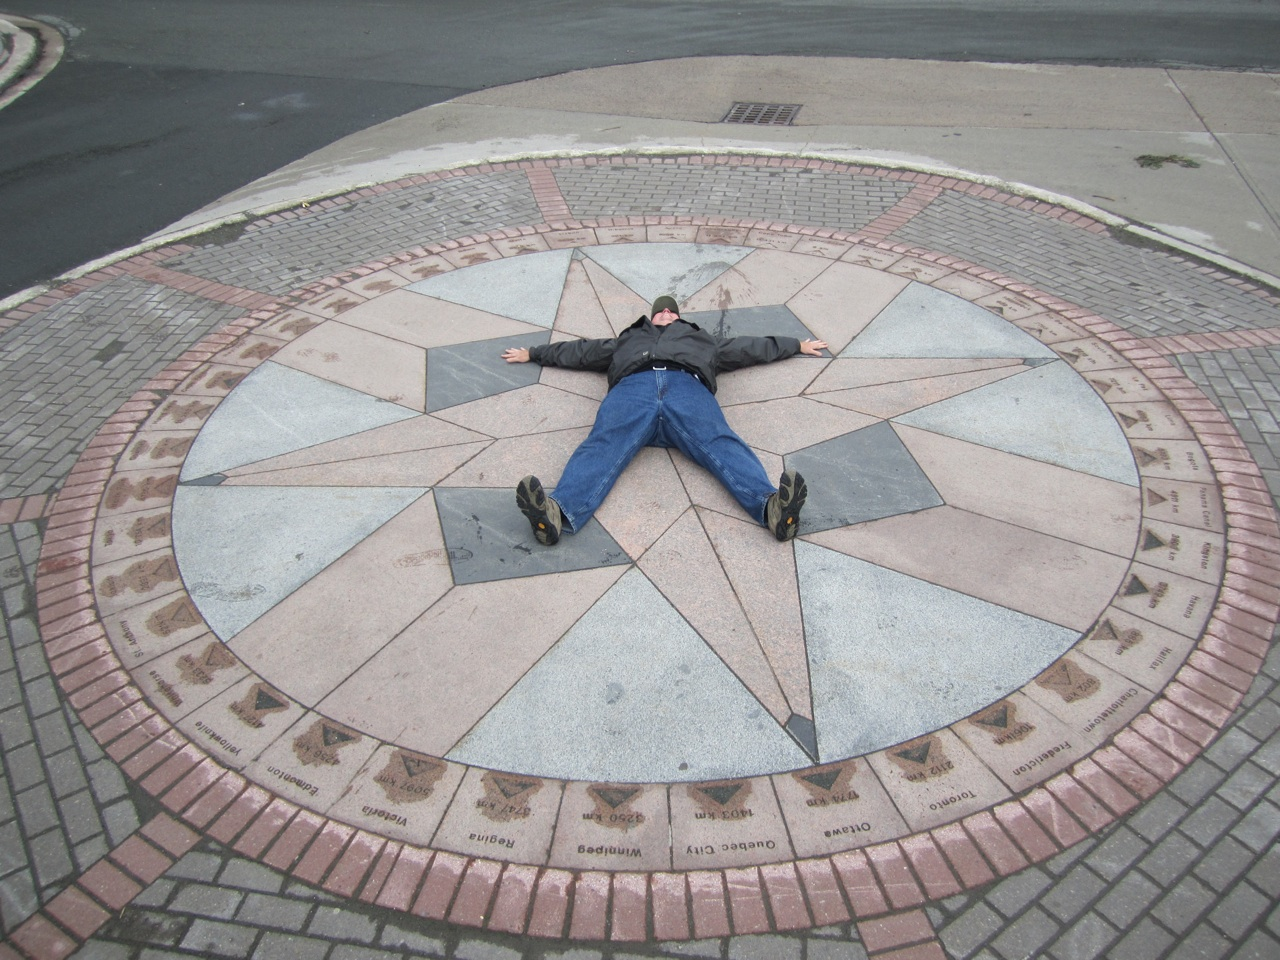 David Laying On Mile Marker 0 In St. John's, Newfoundland